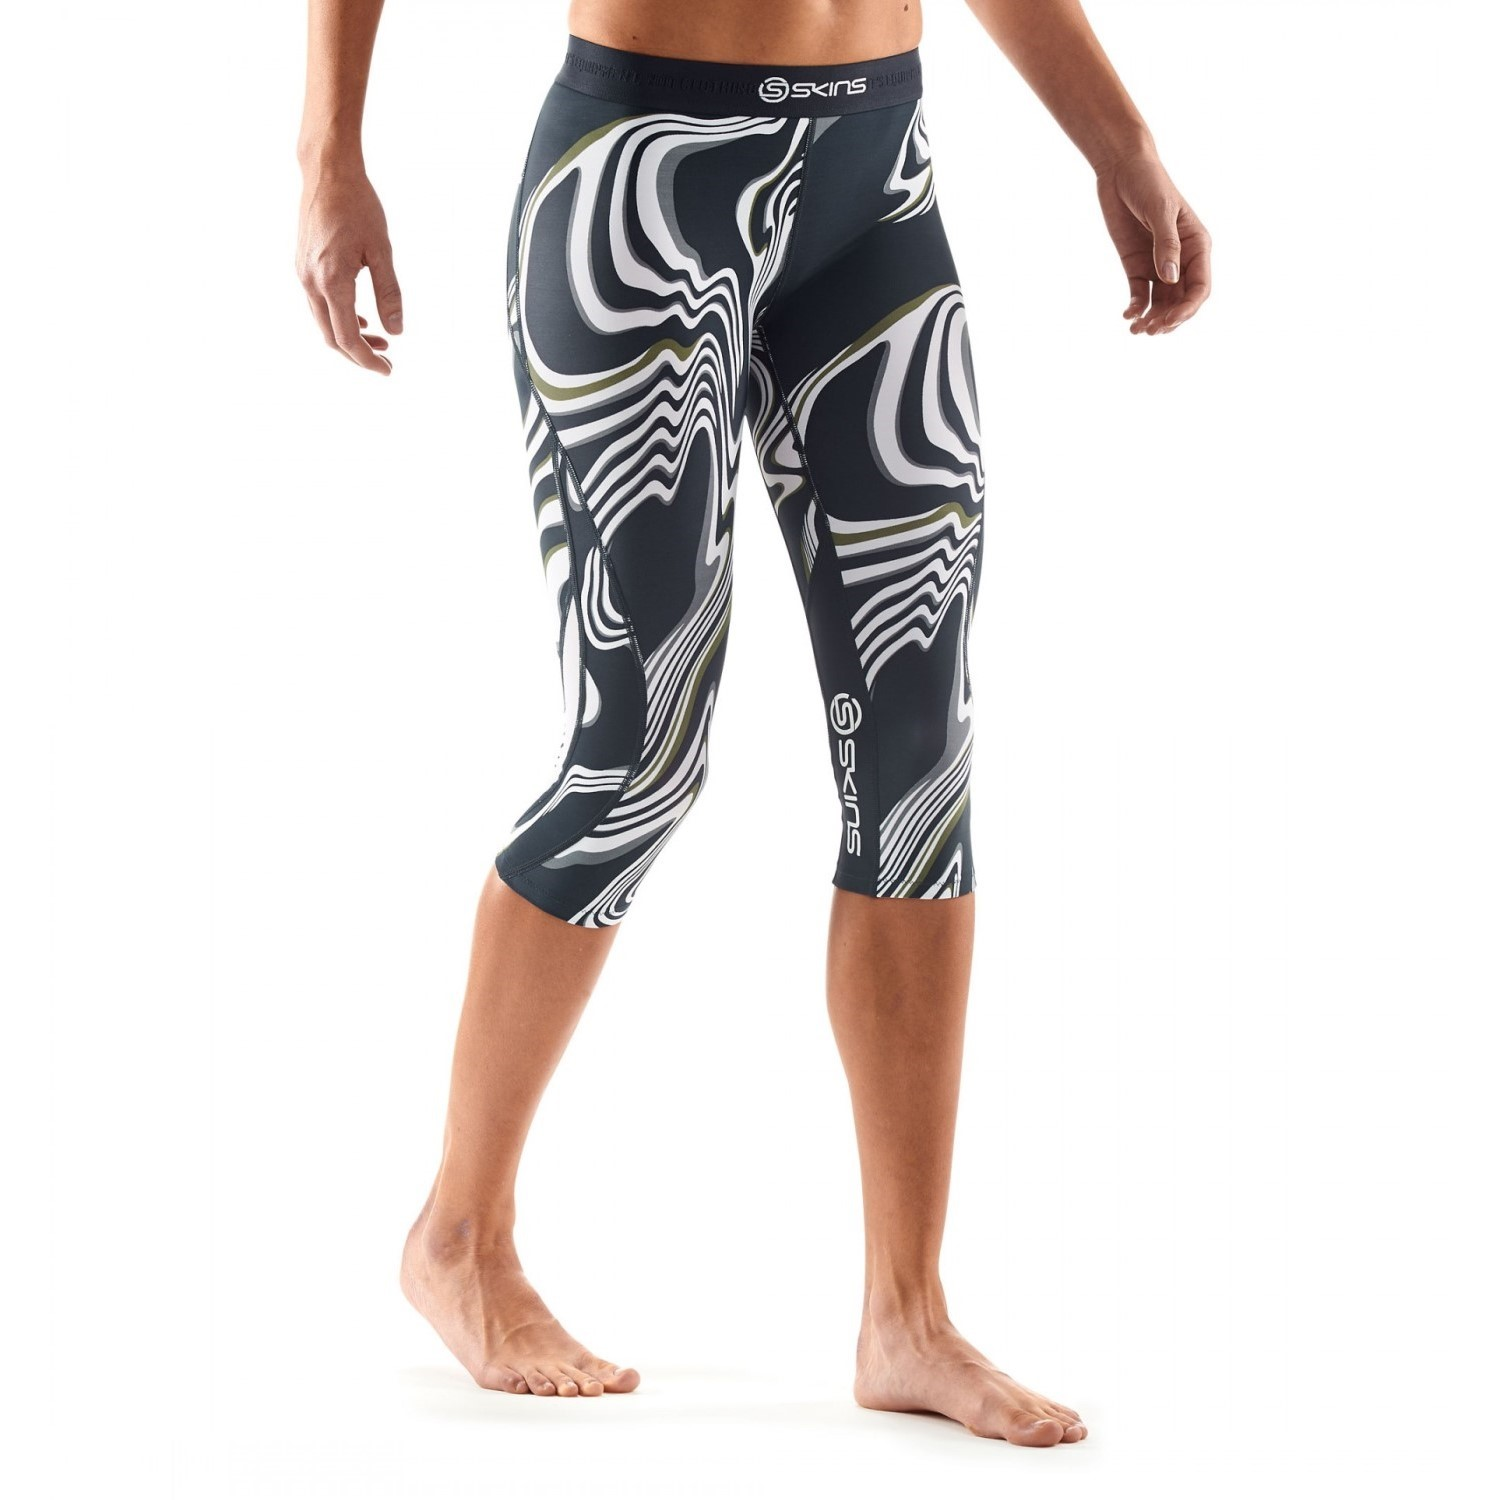 b39ef1c9a6 Skins DNAmic Womens Compression 3/4 Tights - Living Lines | Sportitude